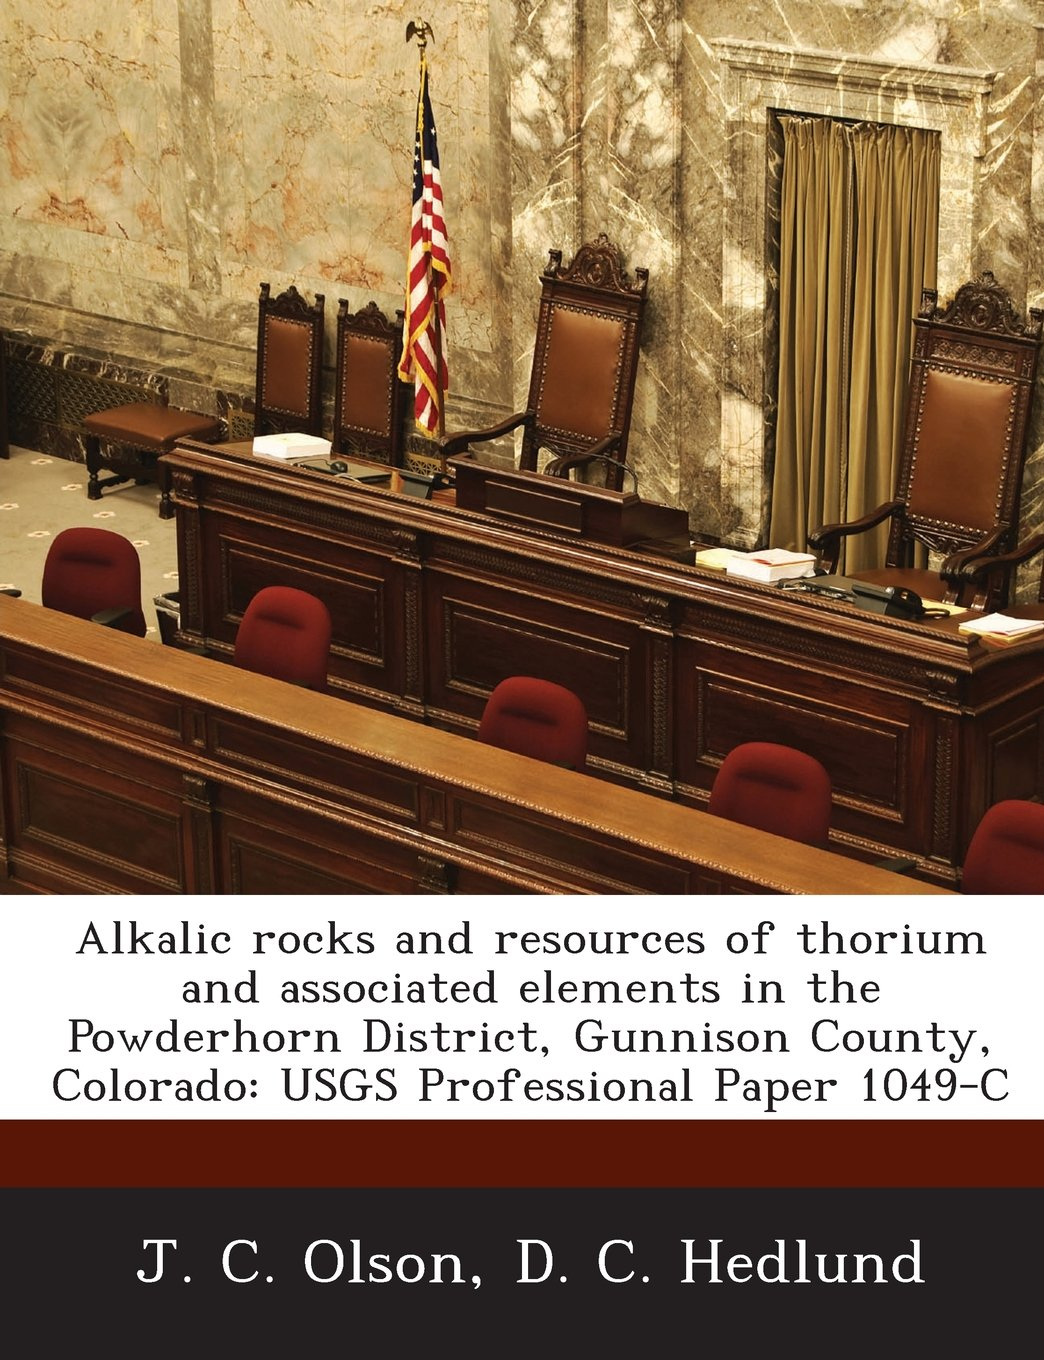 Download Alkalic rocks and resources of thorium and associated elements in the Powderhorn District, Gunnison County, Colorado: USGS Professional Paper 1049-C PDF